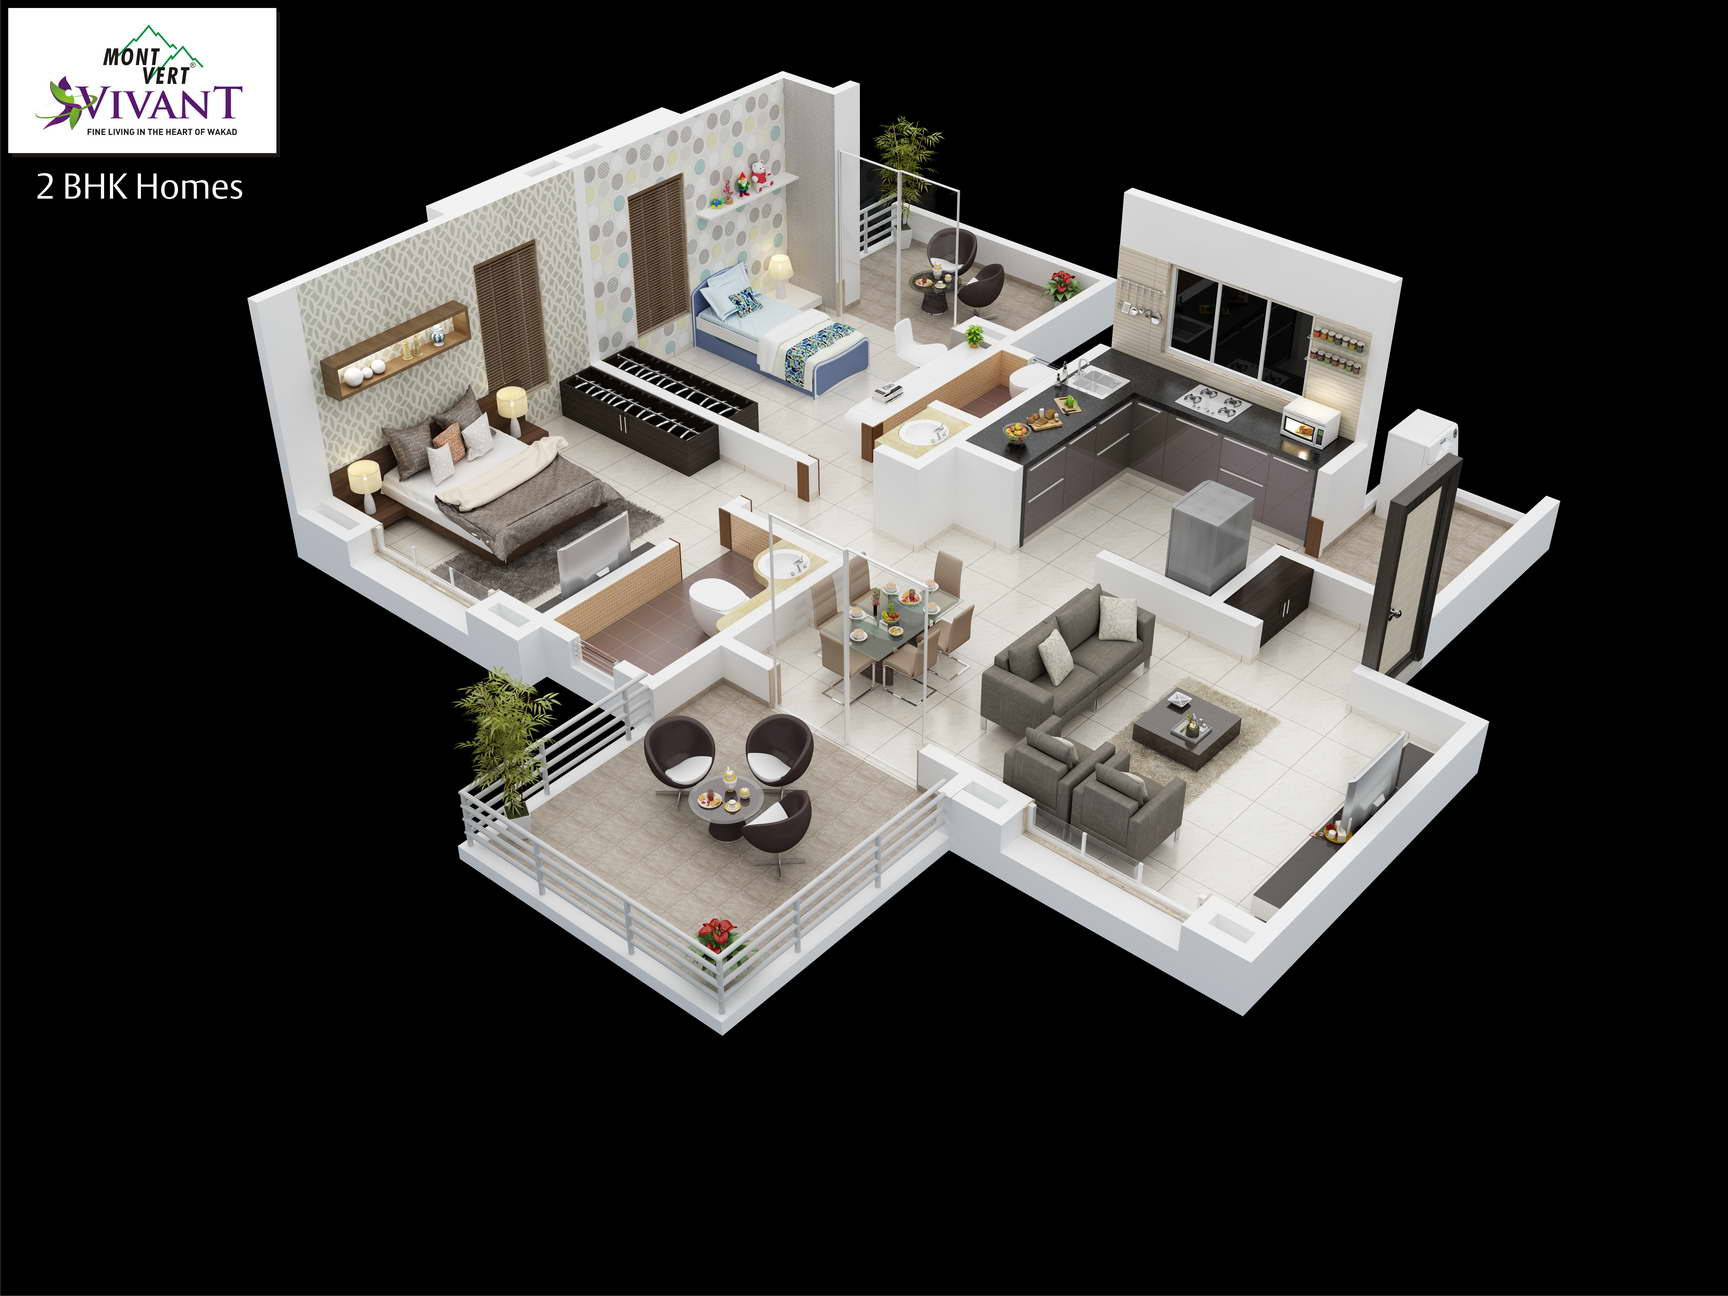 2bhk-flats-for-sale-wakad-pune-vivant